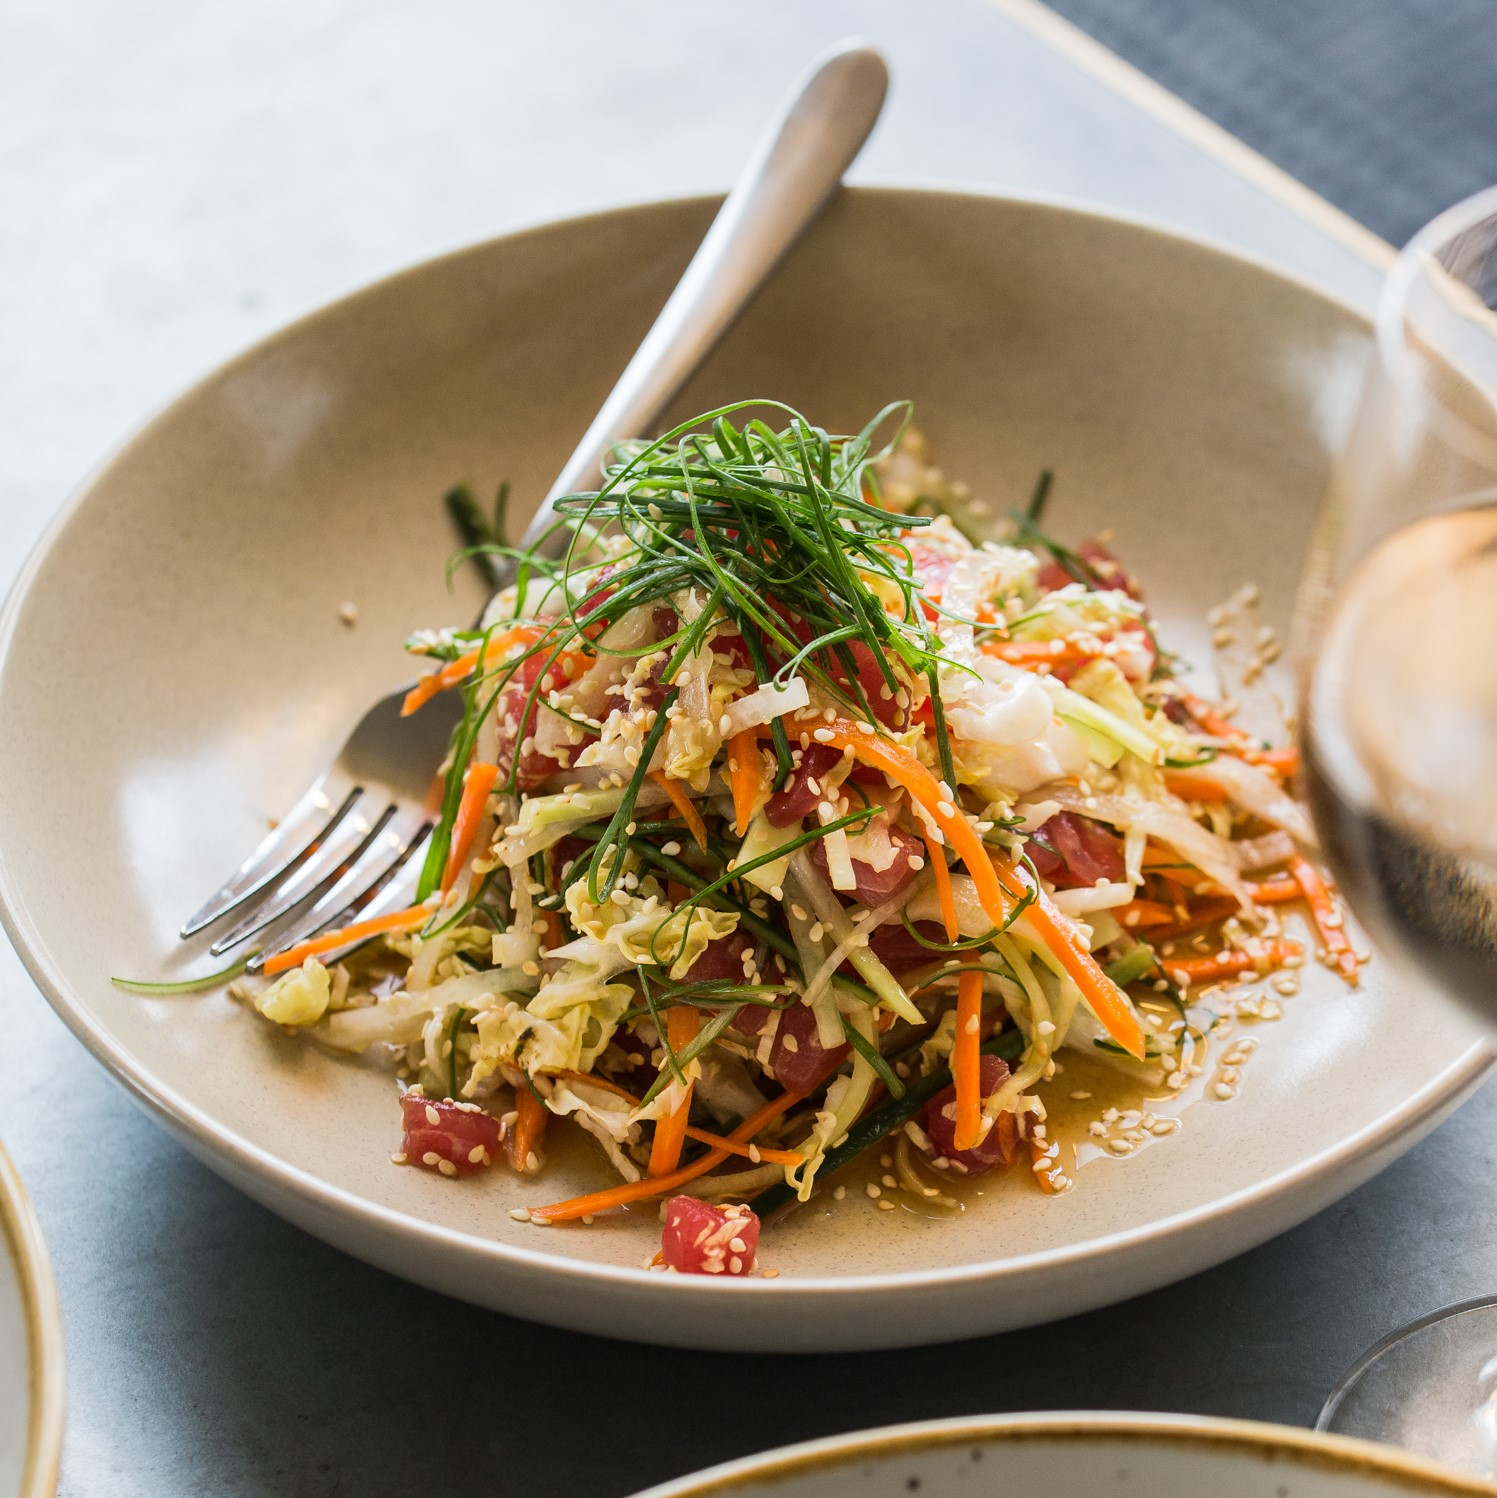 Raw Tuna | shredded cabbage, cucumber, daikon, carrot, shallot, sesame & soy-ginger dressing (GF) | 24